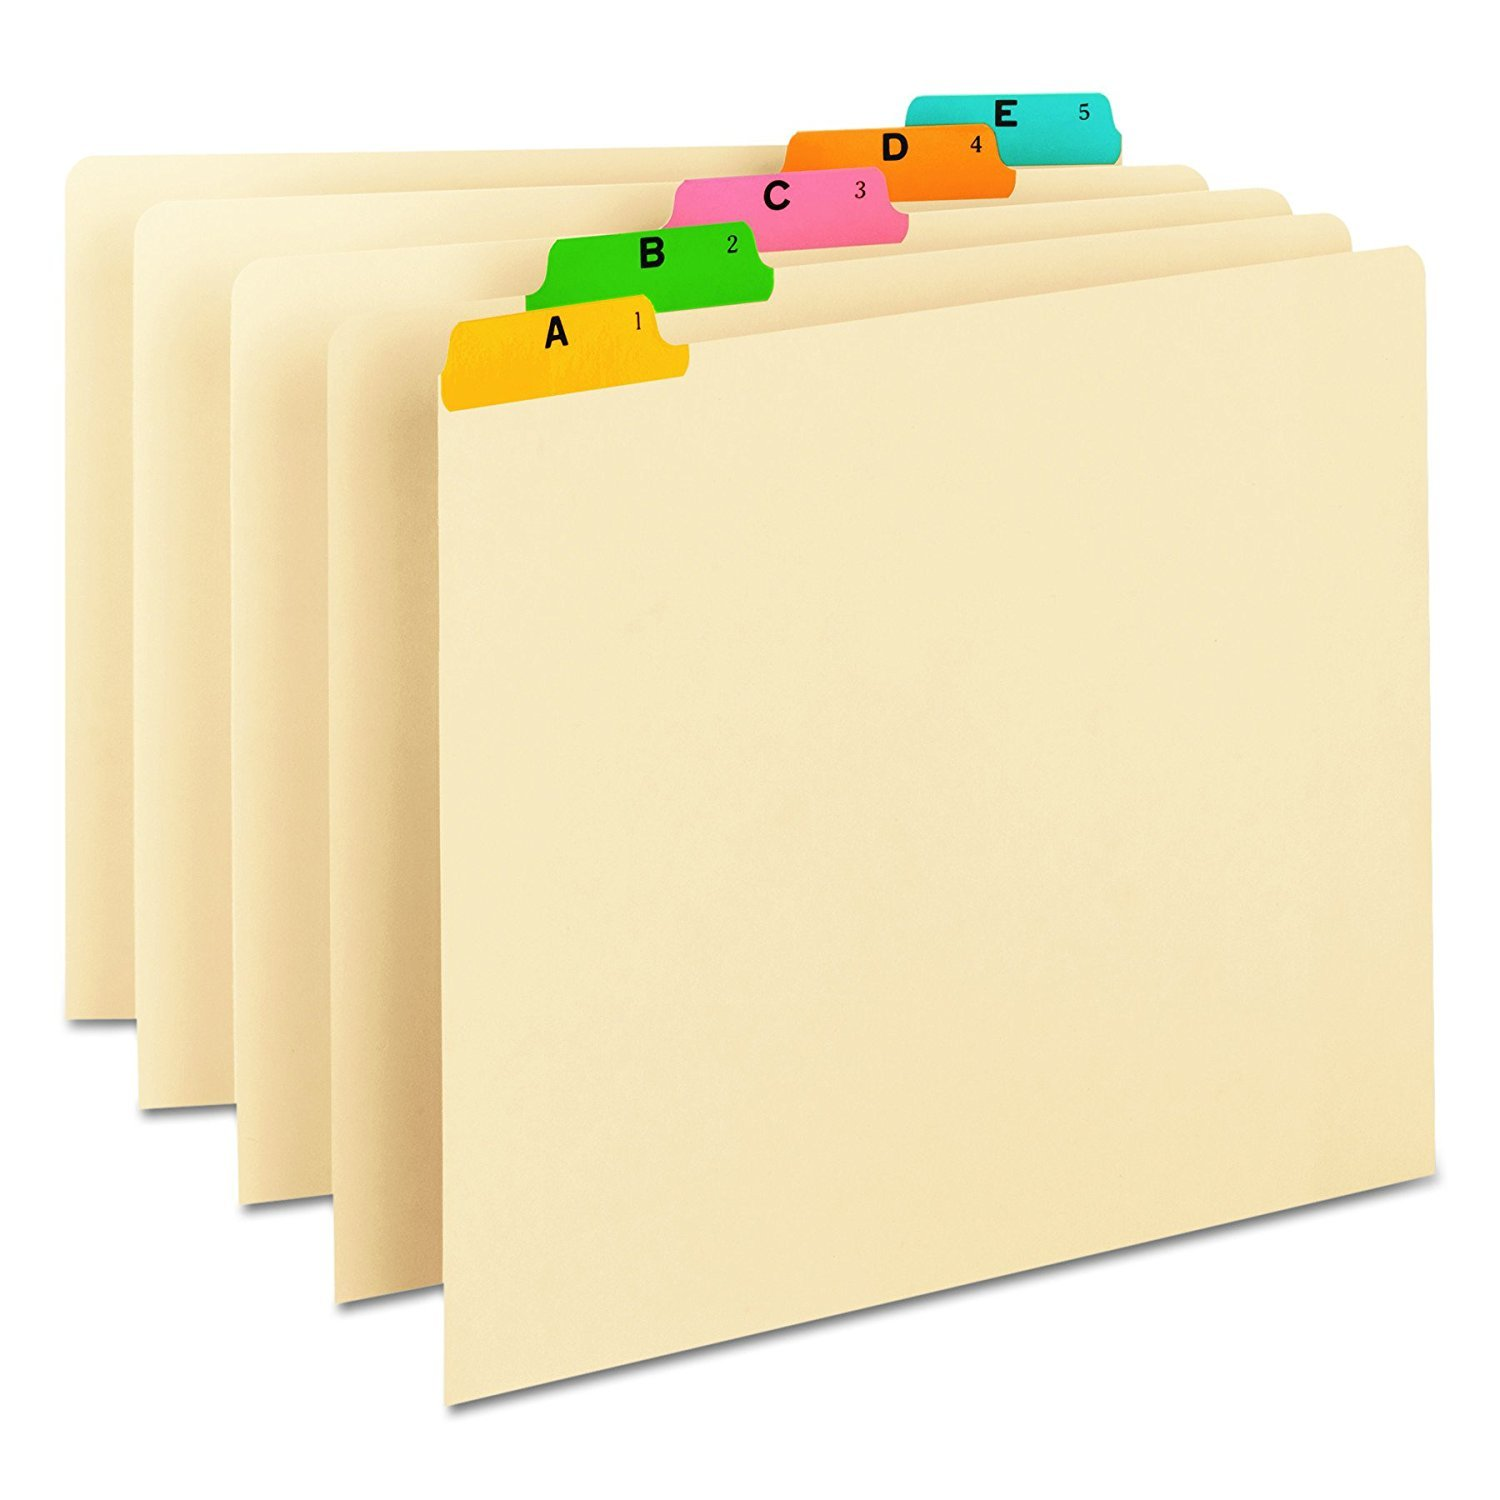 Smead 50180 Recycled Top Tab File Guides, Alpha, 1/5 Tab, Manila, Letter (Set of 25) (3 SETS OF 25)